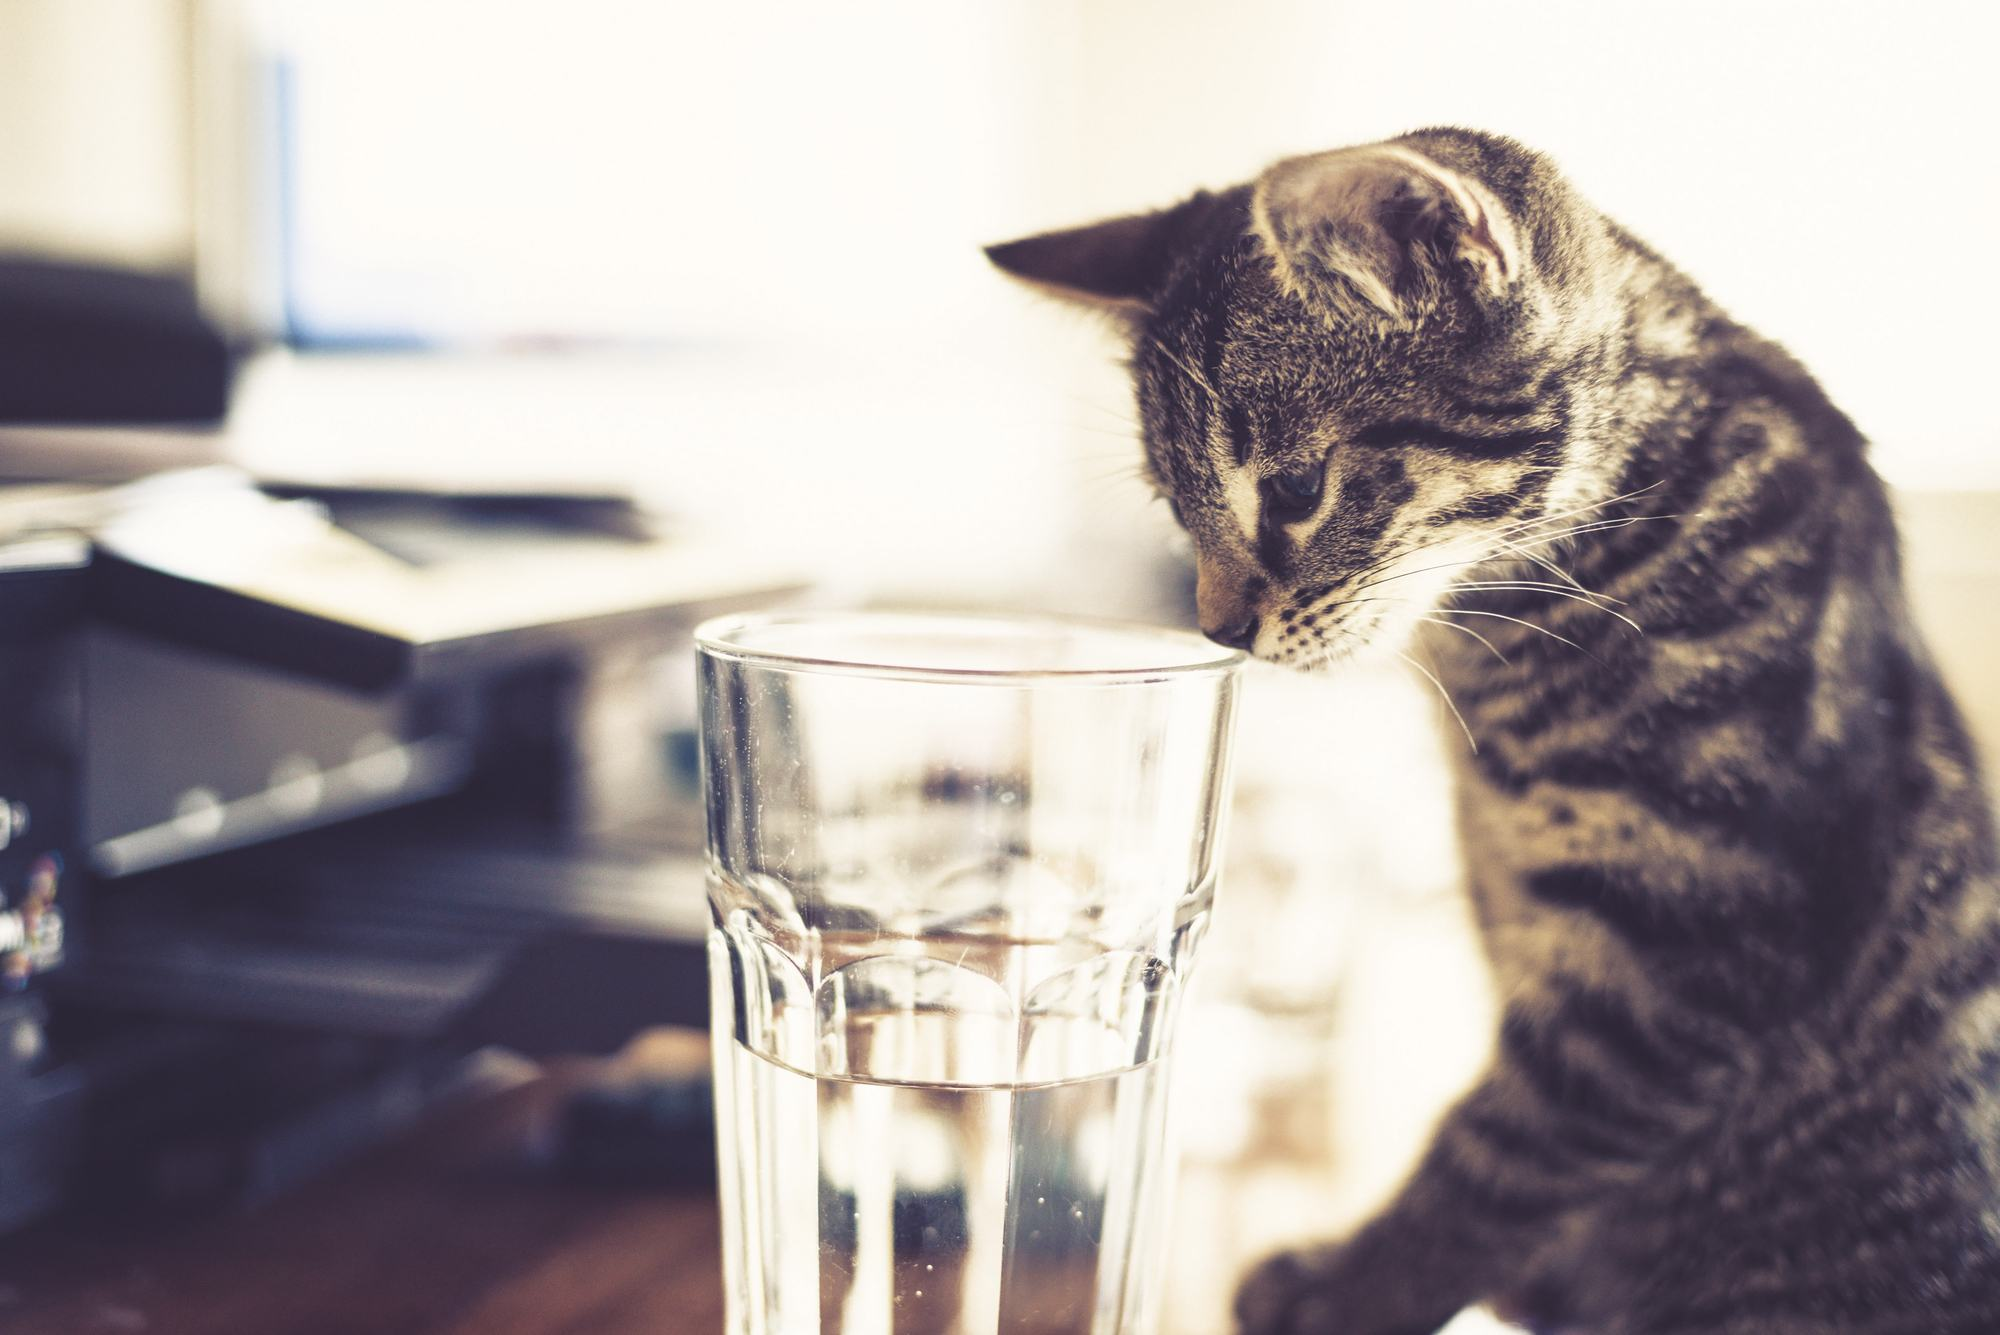 a cat with nose in a drinking glass